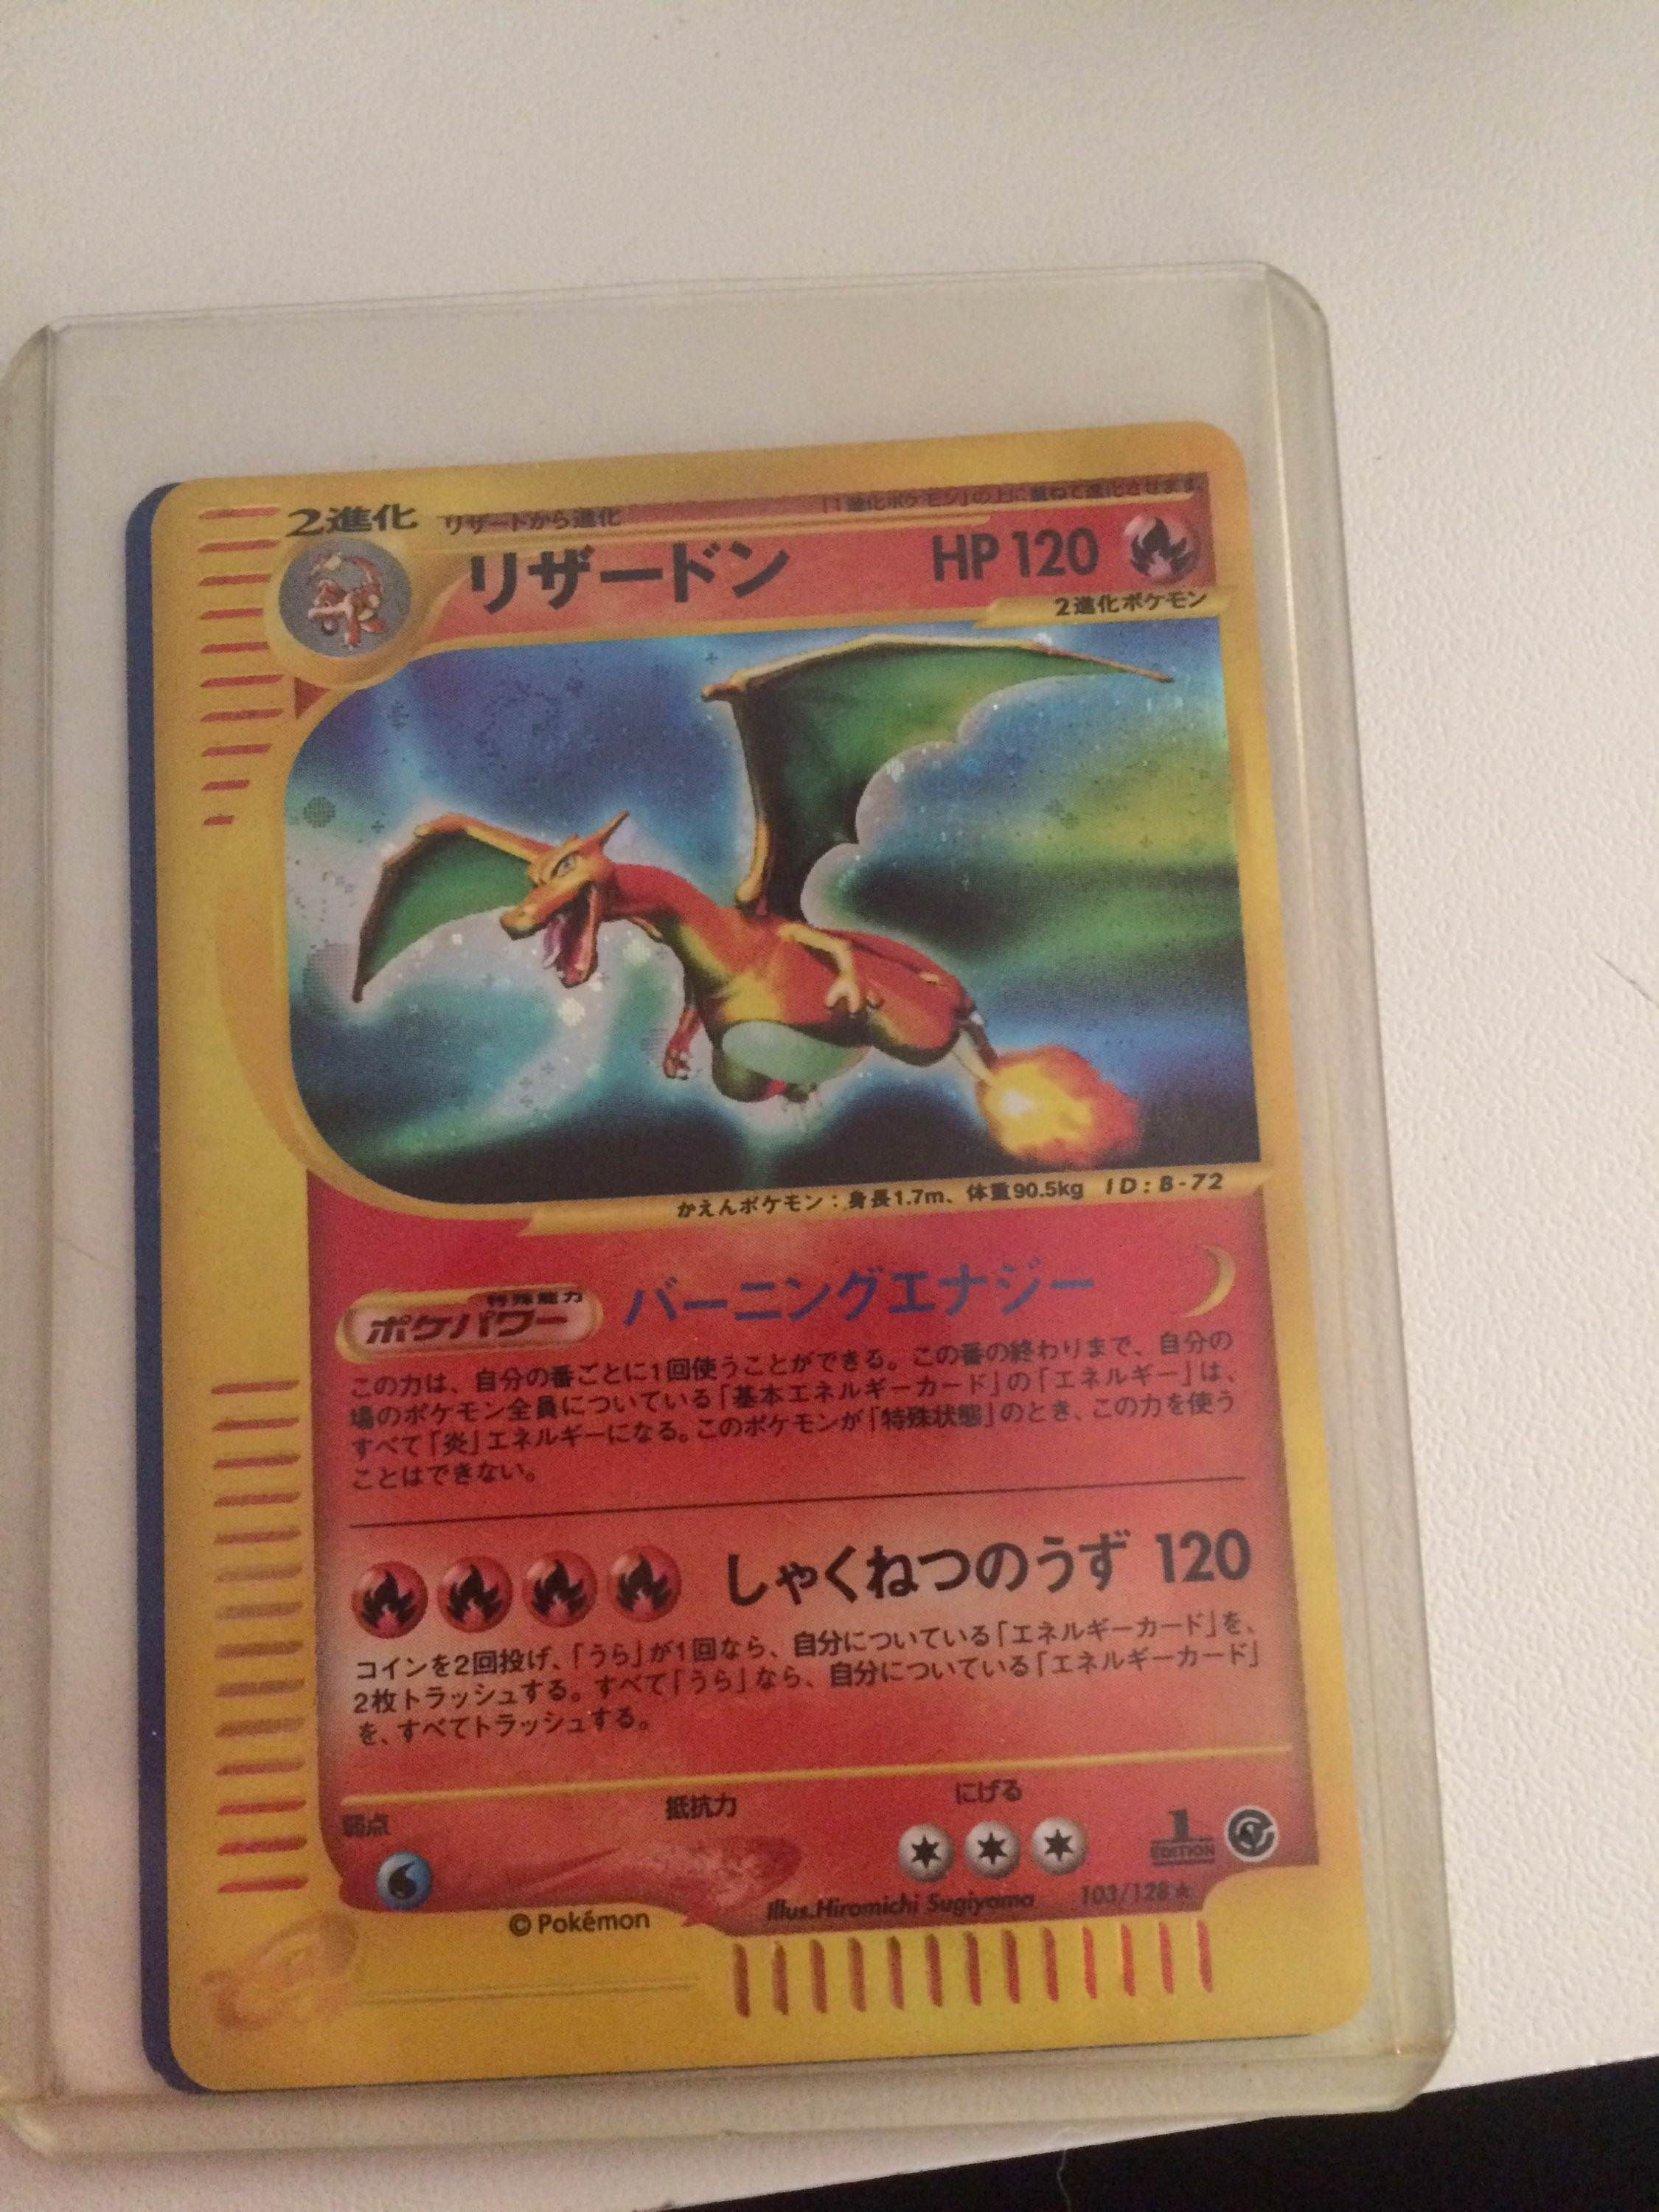 Is this card worth anything i couldnt find it on